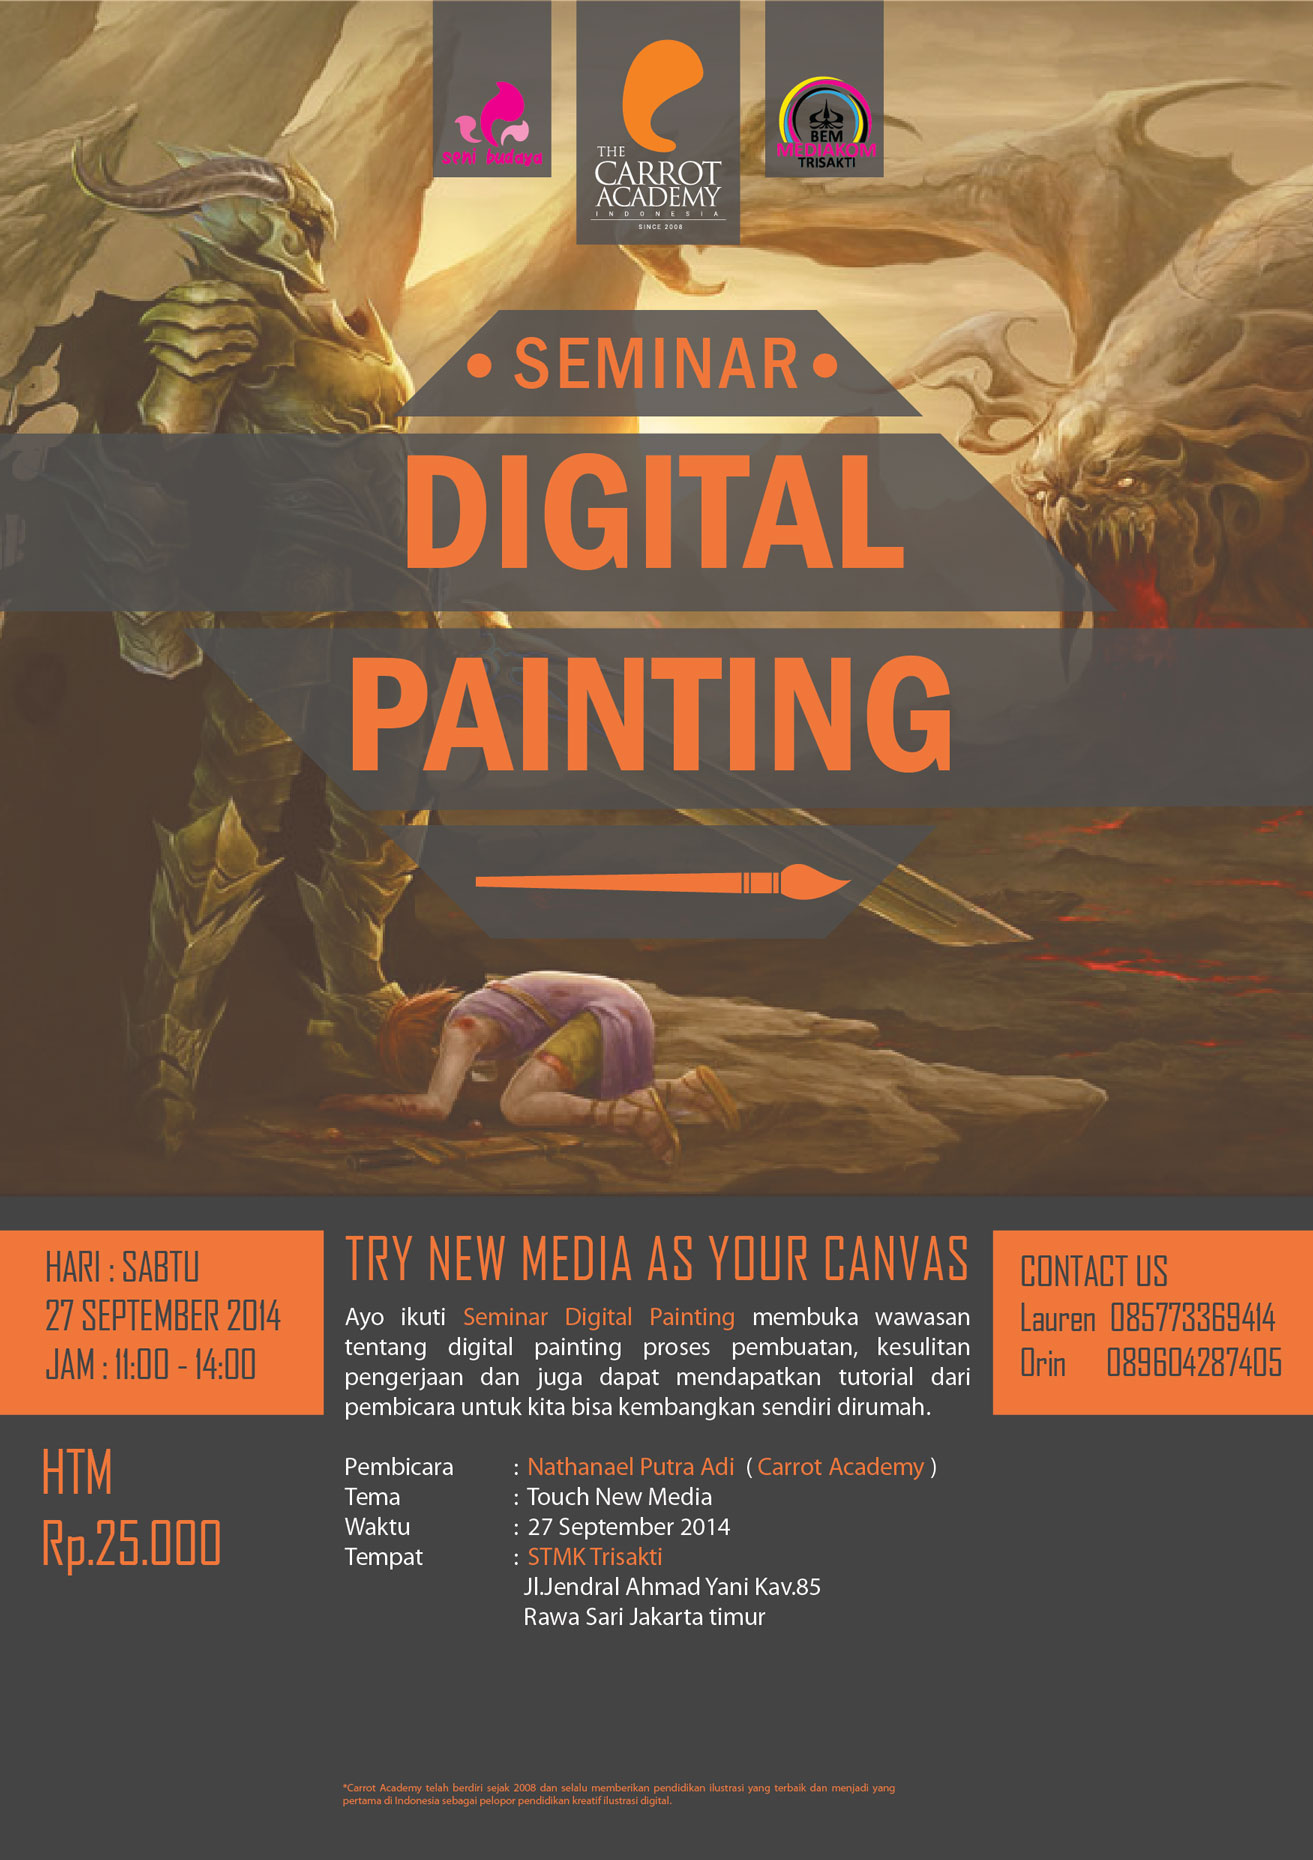 seminar-digital-painting-poste